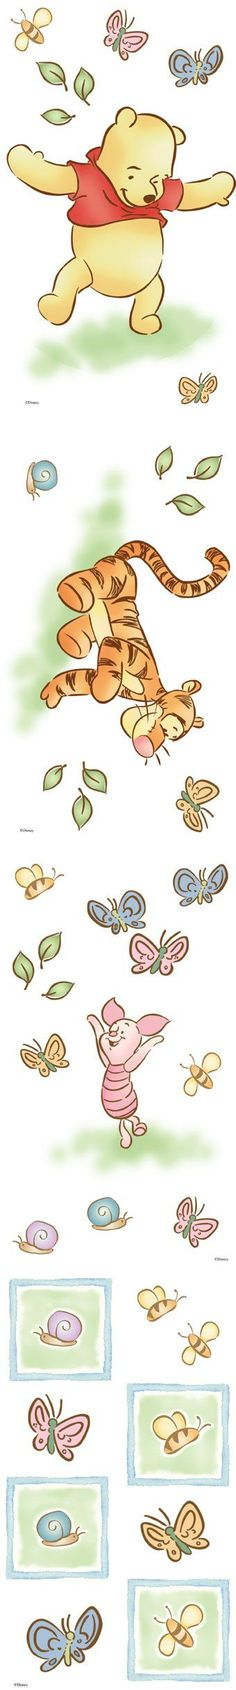 Pooh wall decals